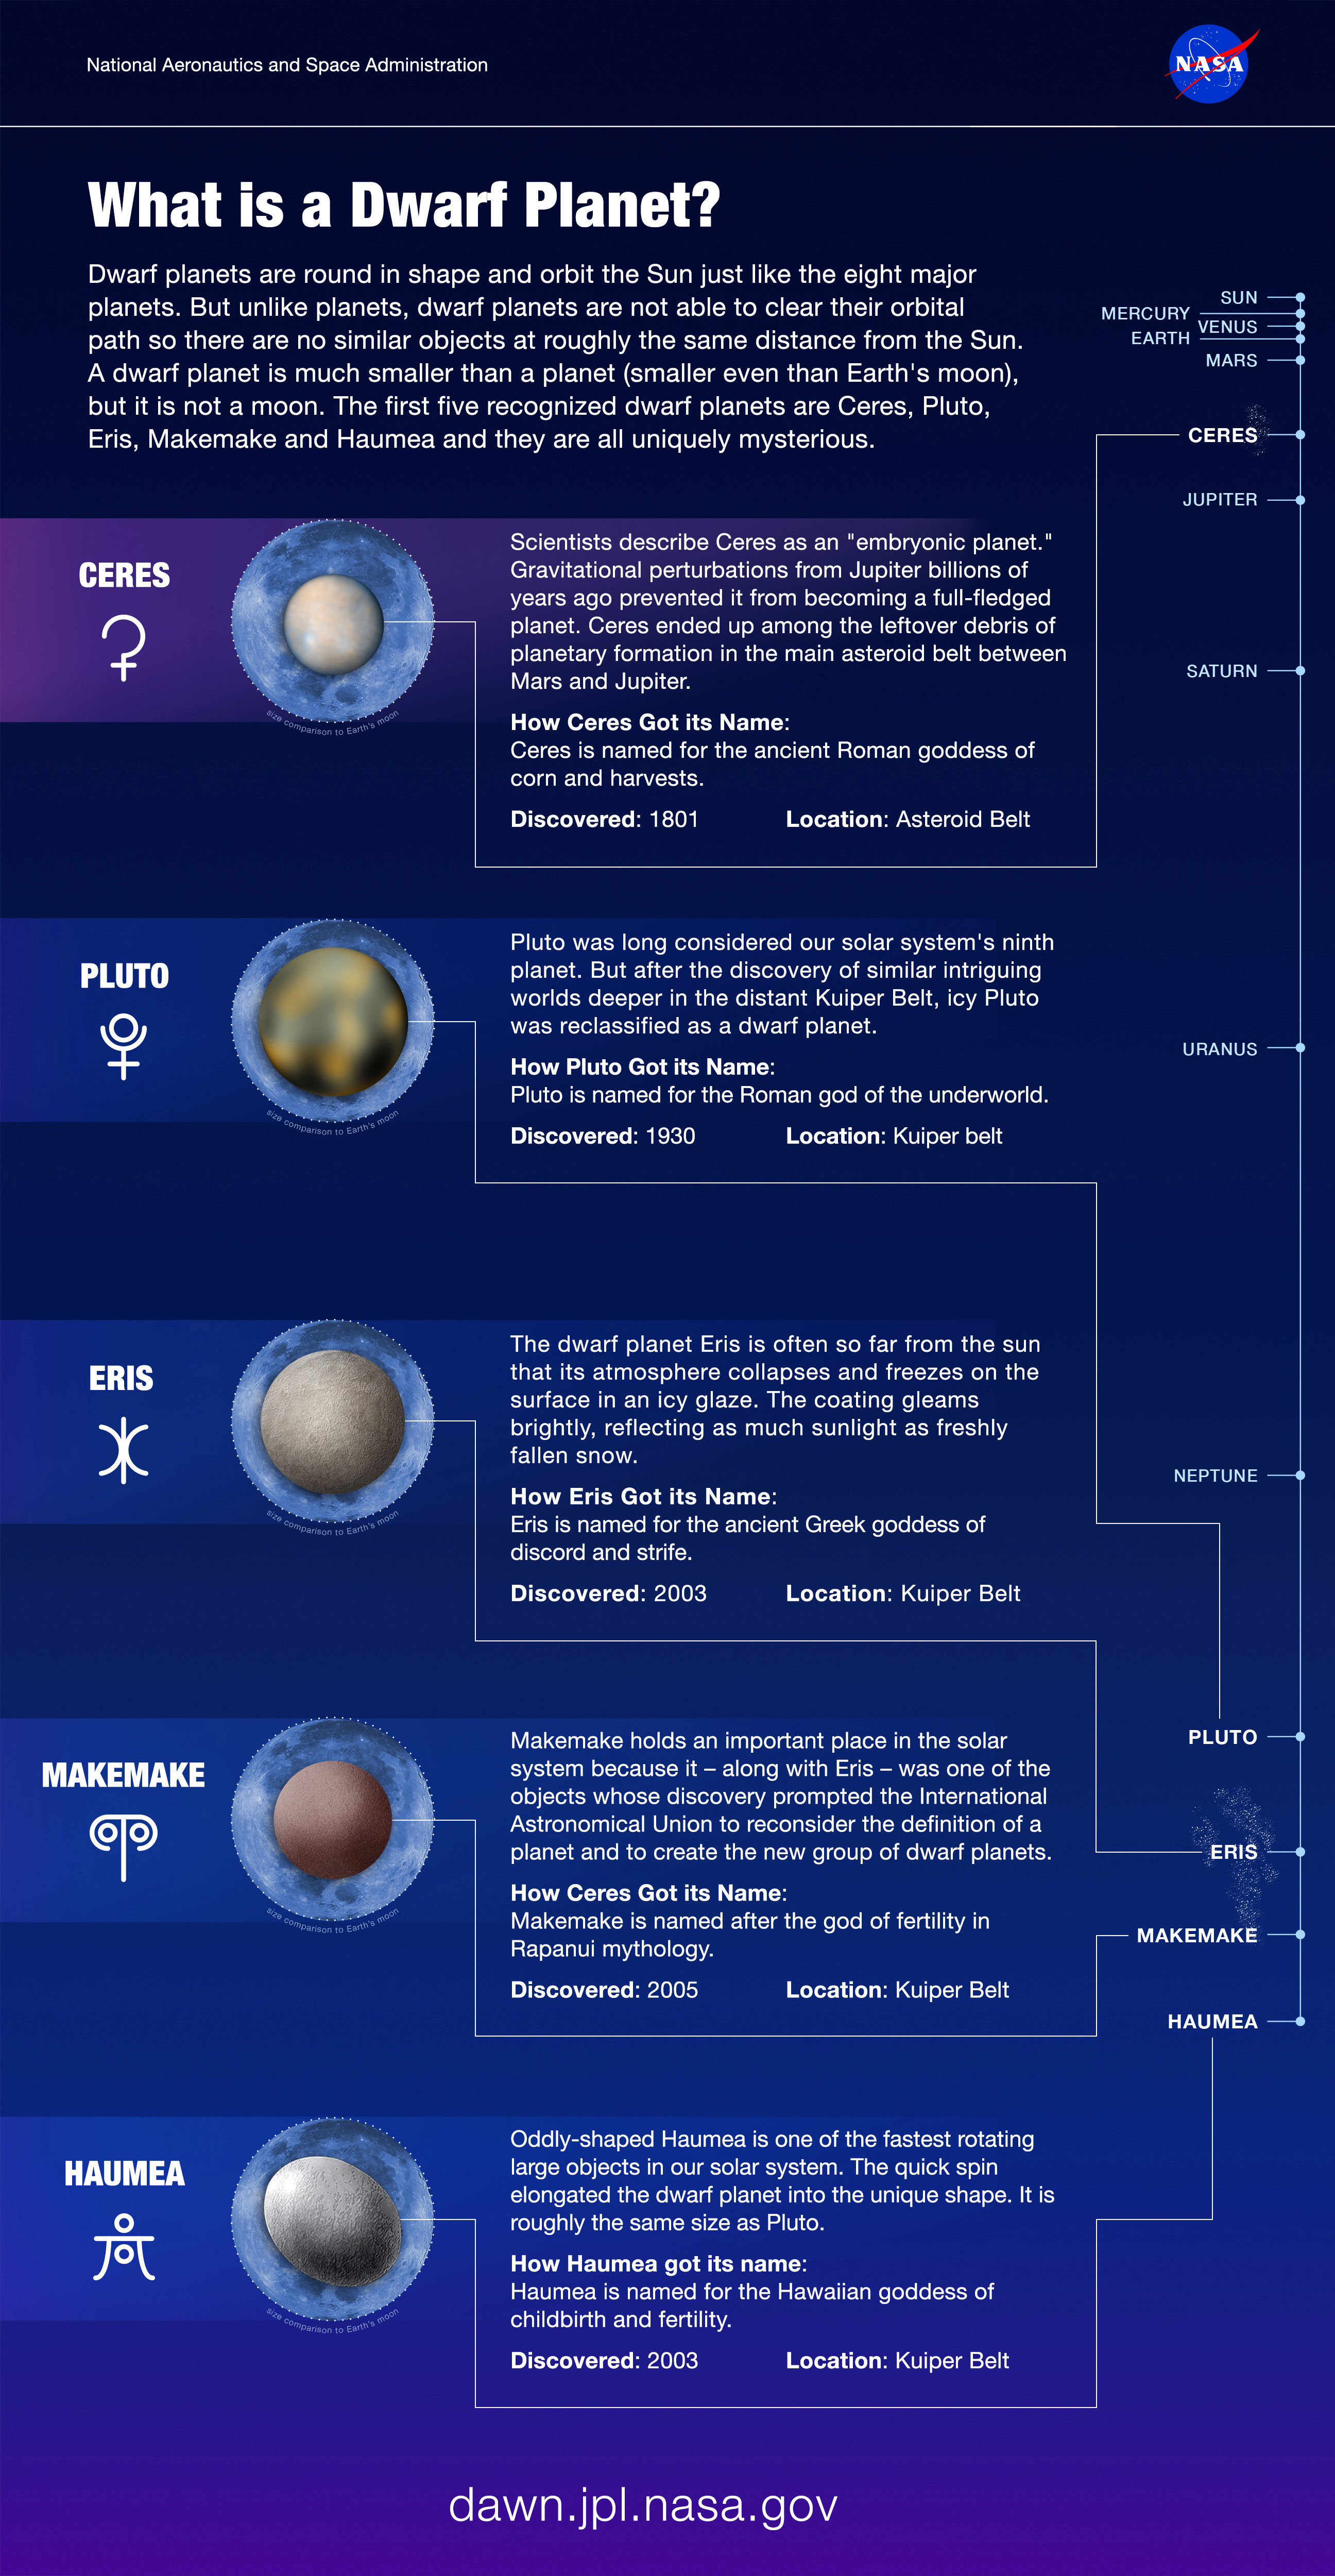 What is a Dwarf Planet? infographic uploaded to the JPL wwebsite by Jelly. Original: http://www.jpl.nasa.gov/infographics/infographic.view.php?id=11268